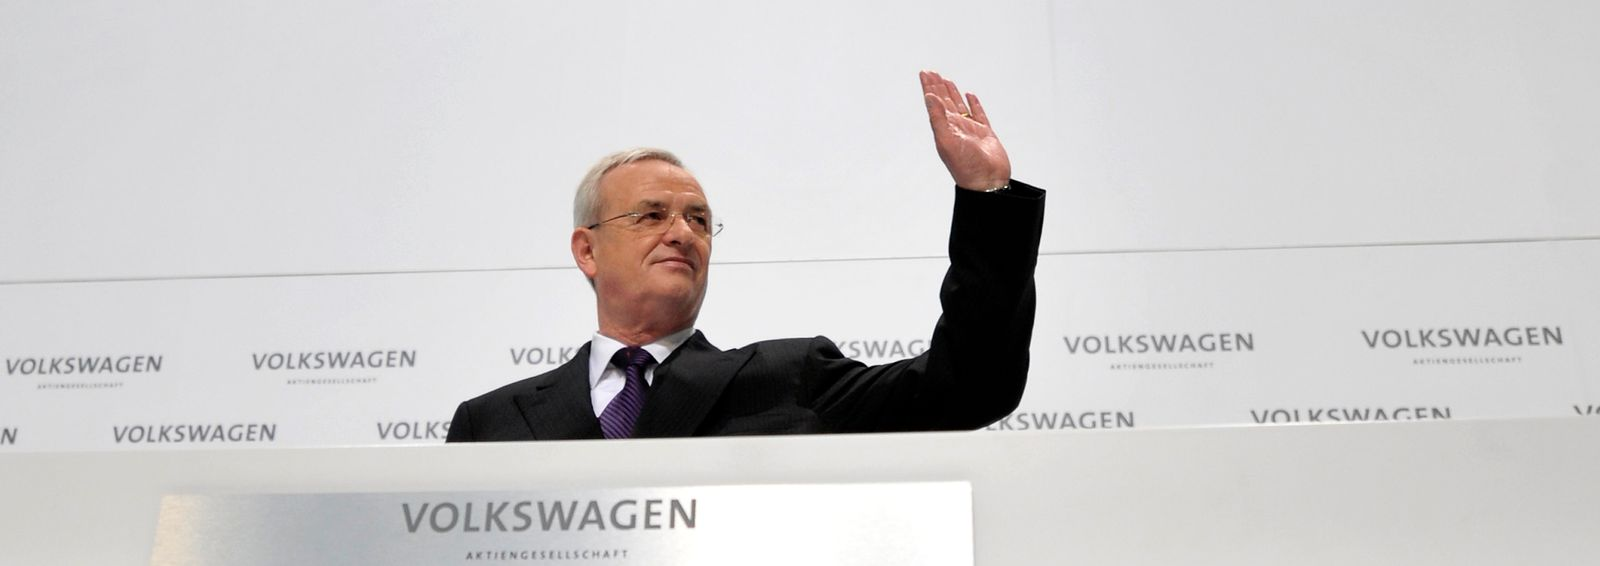 File photo of Volkswagen AG's CEO Winterkorn gesturing as he awaits the start of the annual news conference in Wolfsburg